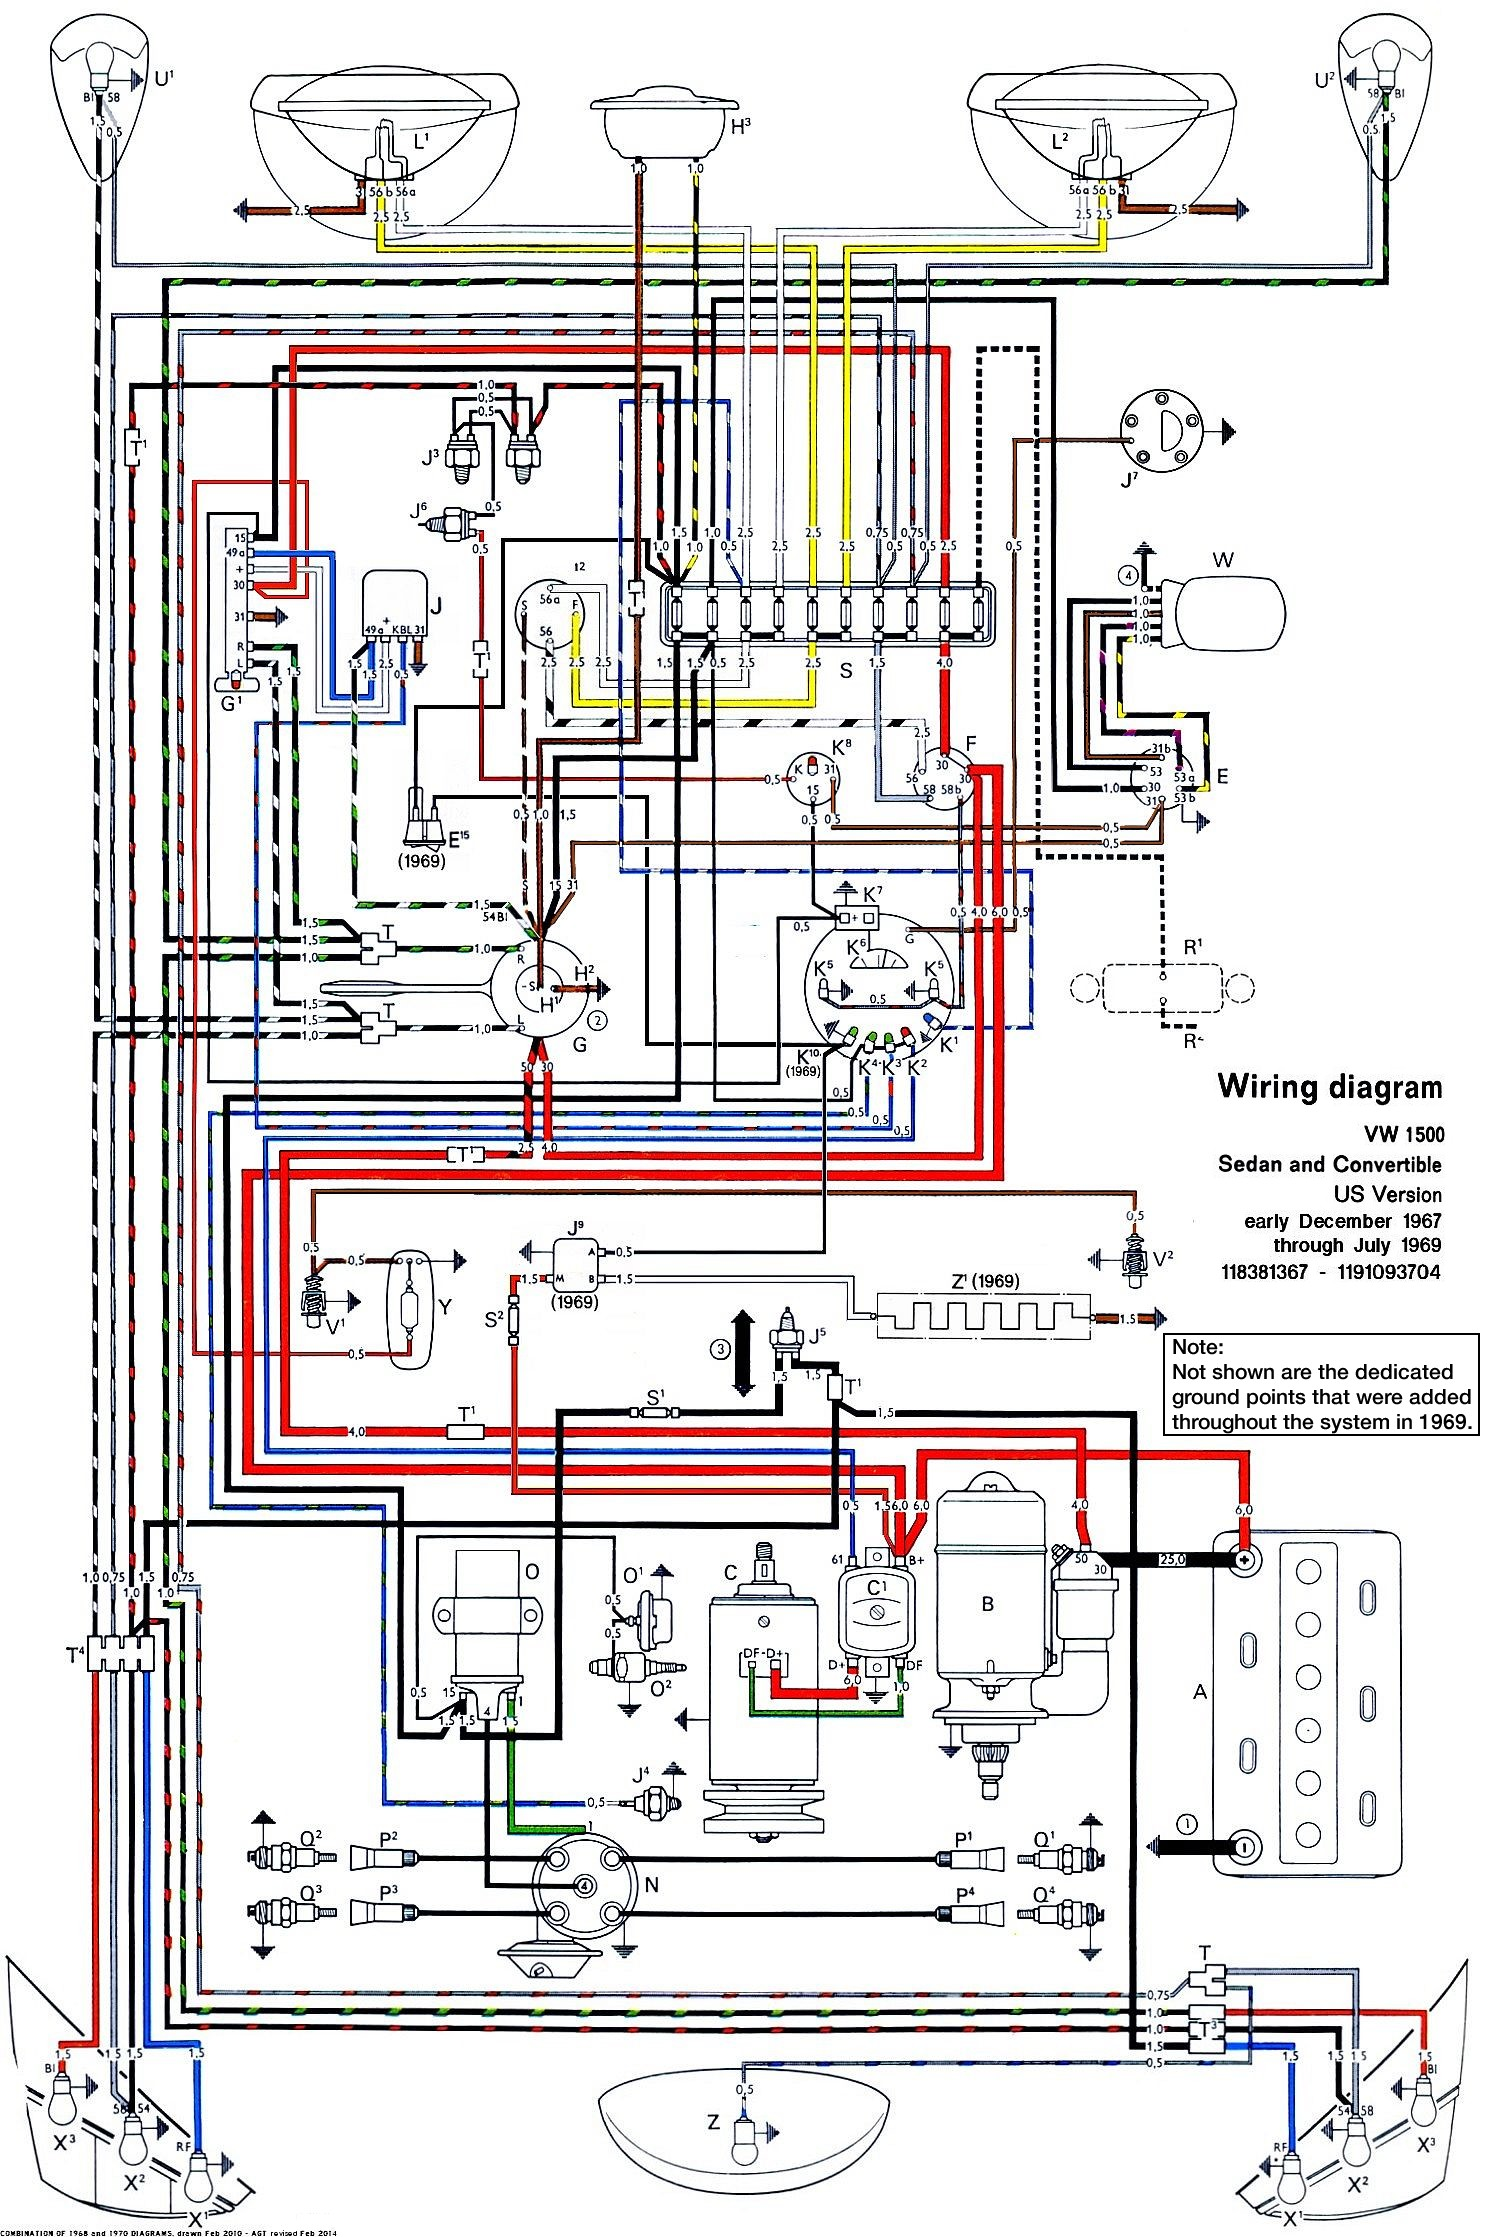 69 Vw Wiring Diagram Sdometer - Circuit Diagram Symbols •  Volkswagen Wiring Schematic on engine schematics, plumbing schematics, transmission schematics, transformer schematics, amplifier schematics, wire schematics, ford diagrams schematics, circuit schematics, electronics schematics, ignition schematics, generator schematics, piping schematics, ecu schematics, ductwork schematics, motor schematics, computer schematics, electrical schematics, tube amp schematics, engineering schematics, design schematics,